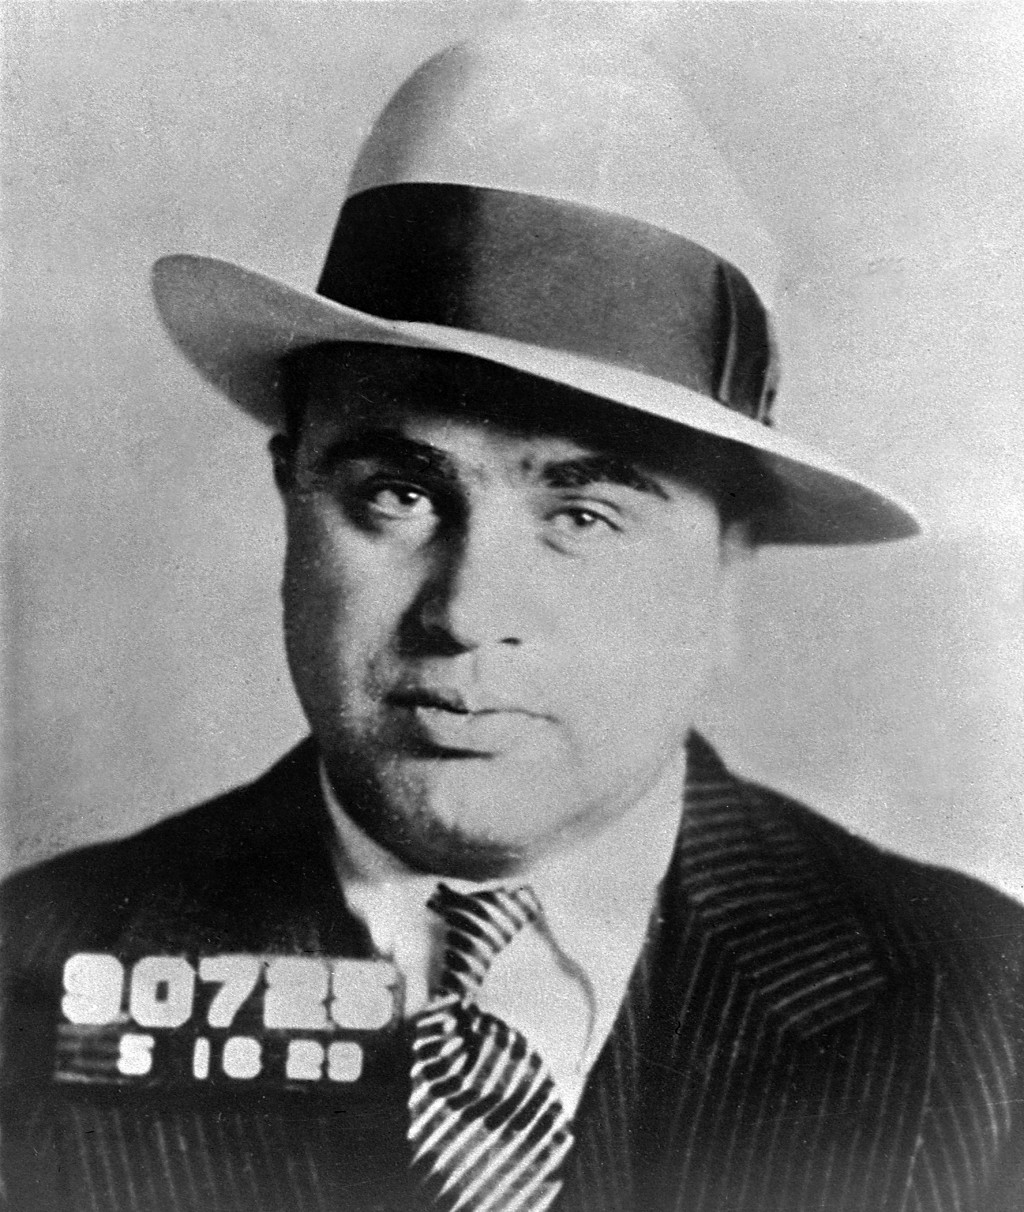 FILE - Chicago gangster Al Capone has his photo taken while in custody in Philadelphia, May 18, 1929, on charges of carrying concealed weapons. It was...